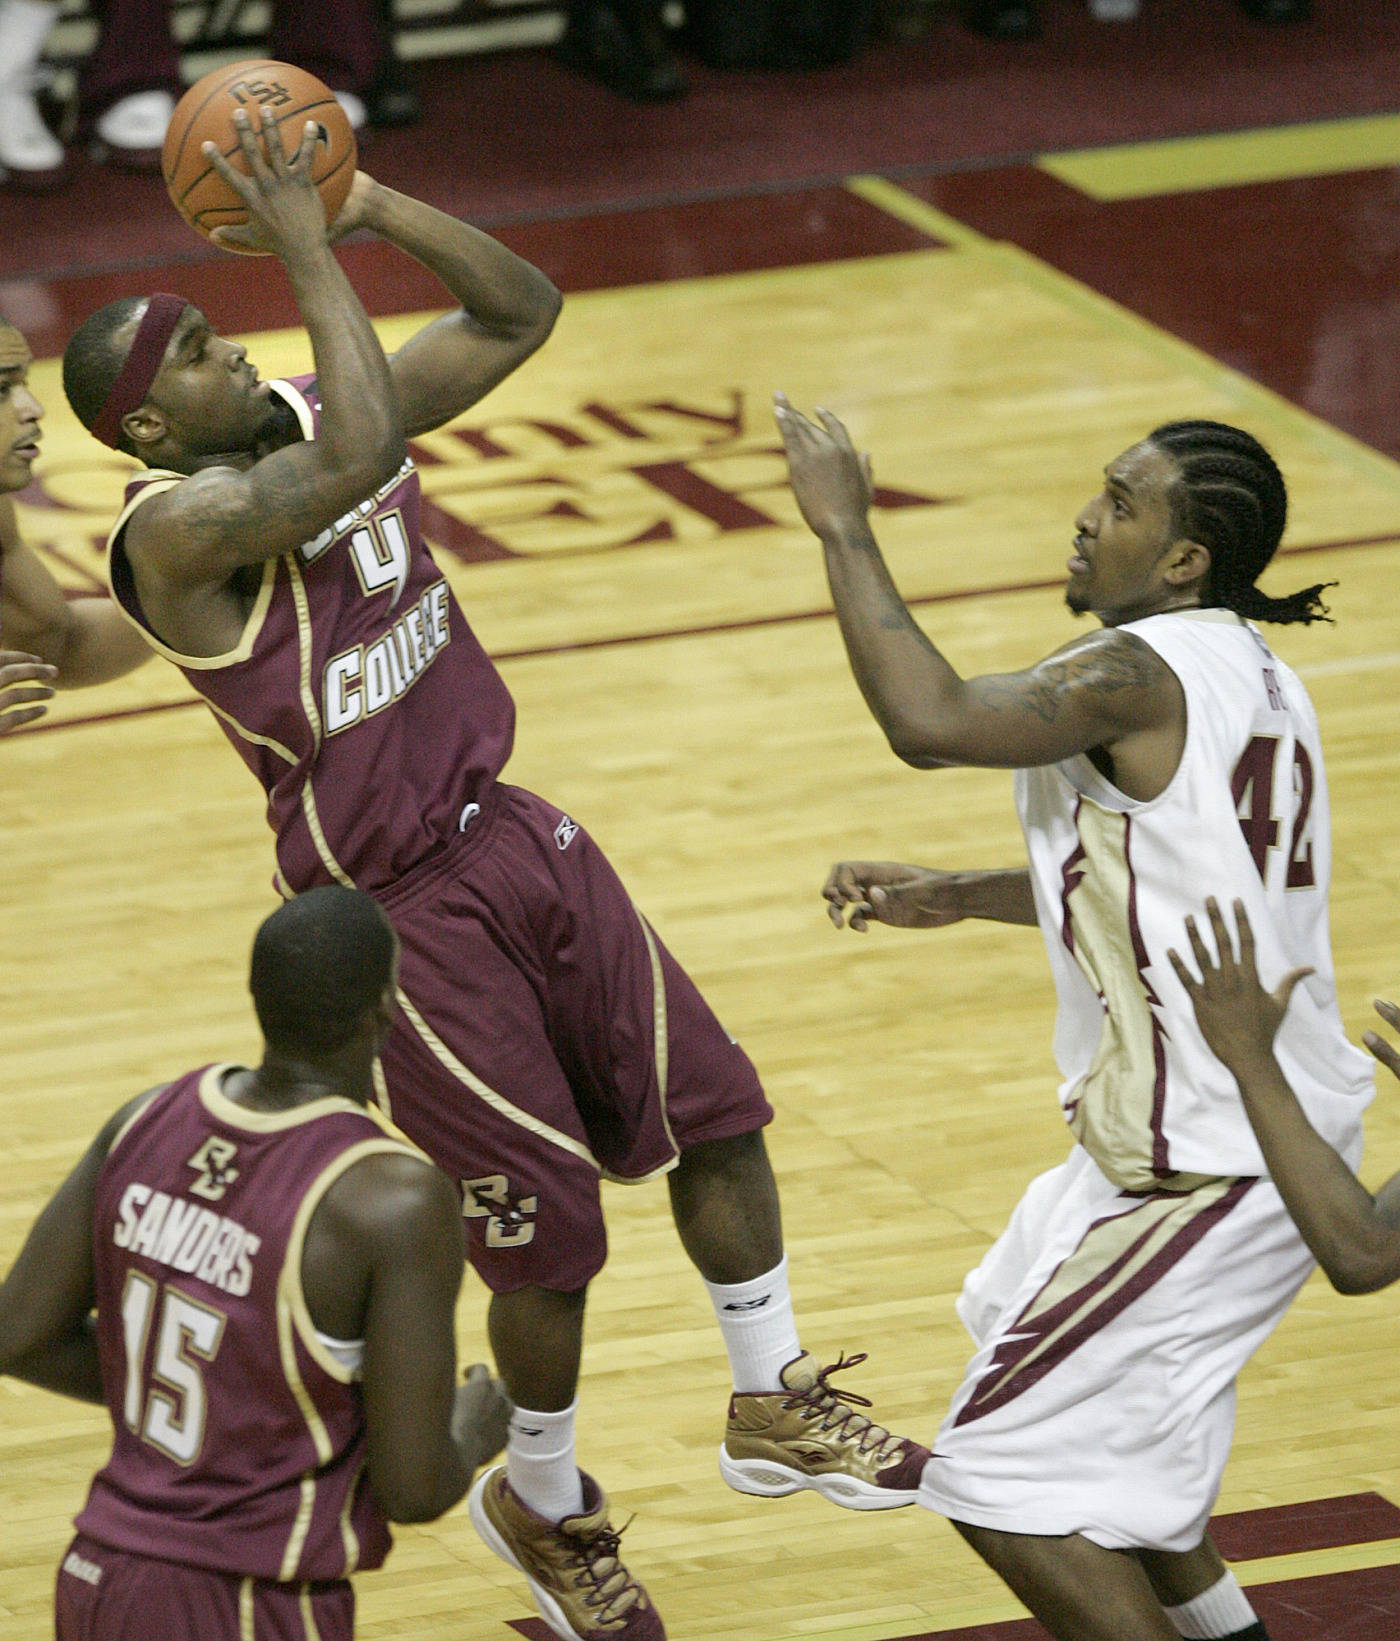 Boston College's Tyrese Rice gets off a shot as Ryan Reid rushes to defend in the first half. (AP Photo/Steve Cannon)